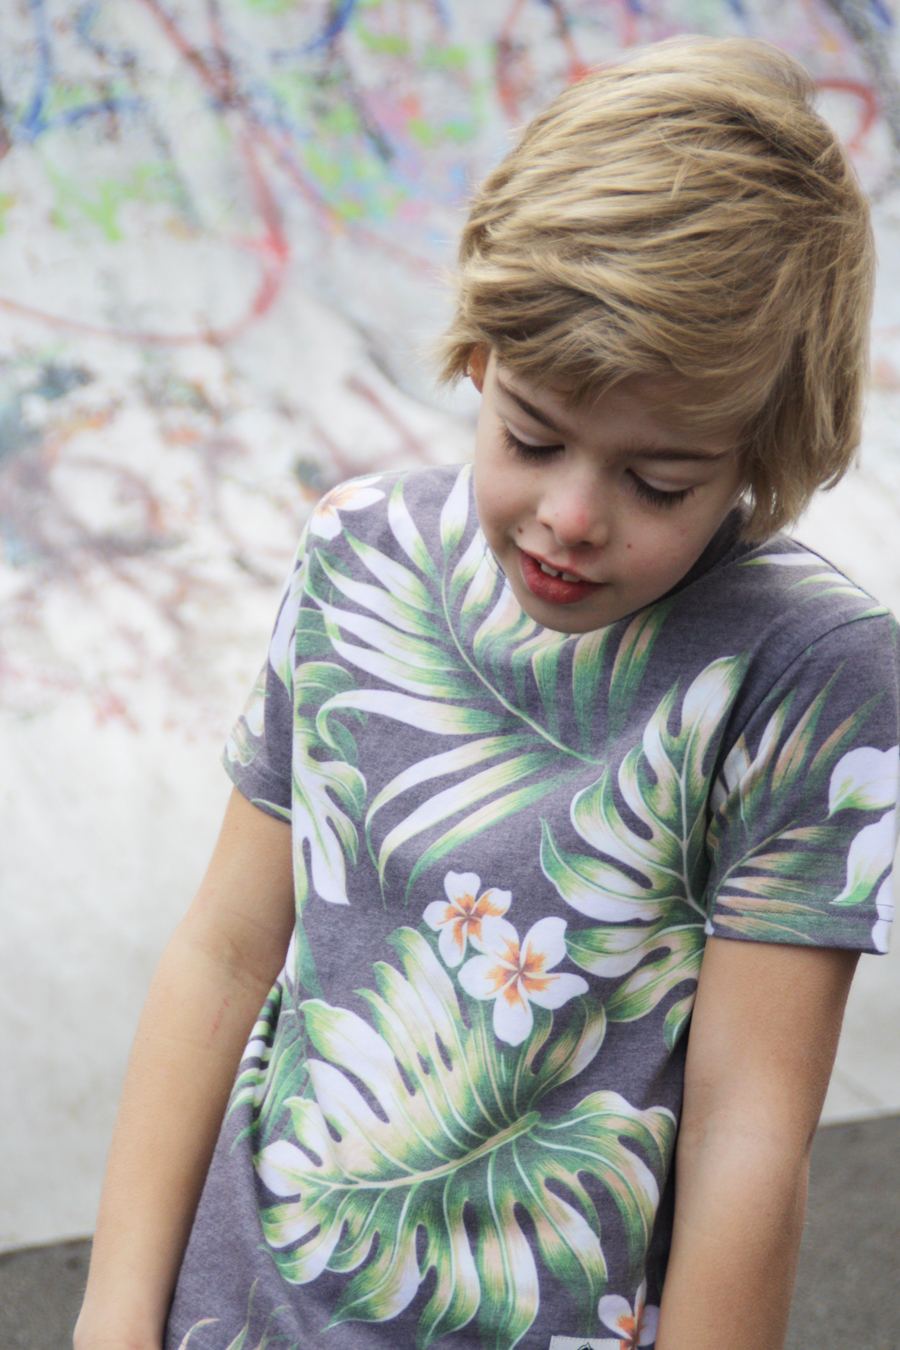 Penfield t-shirts, floral print trend kindermode, penfield kinderkleding, penfield kids